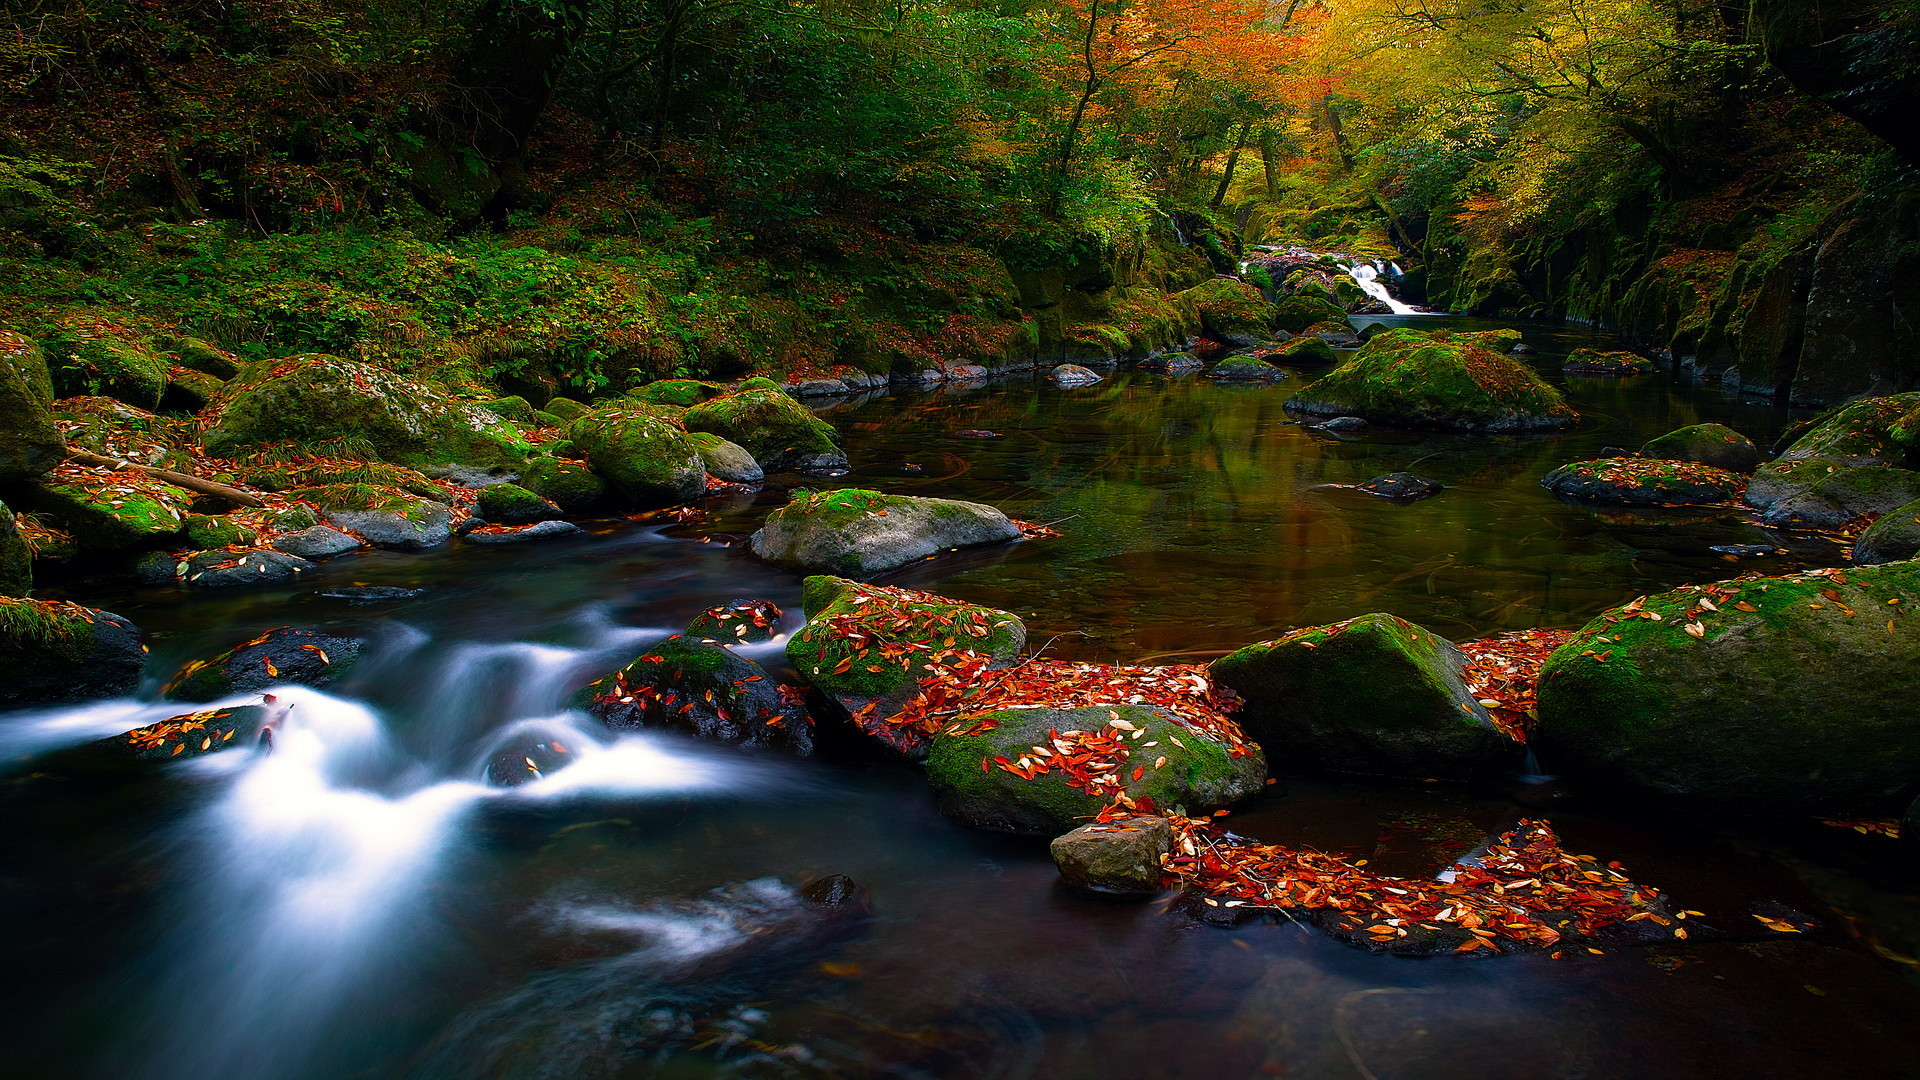 1920x1080 NATURE FOREST RIVER MOUNTAIN SCENERY DESKTOP BACKGROUND WALLPAPER .